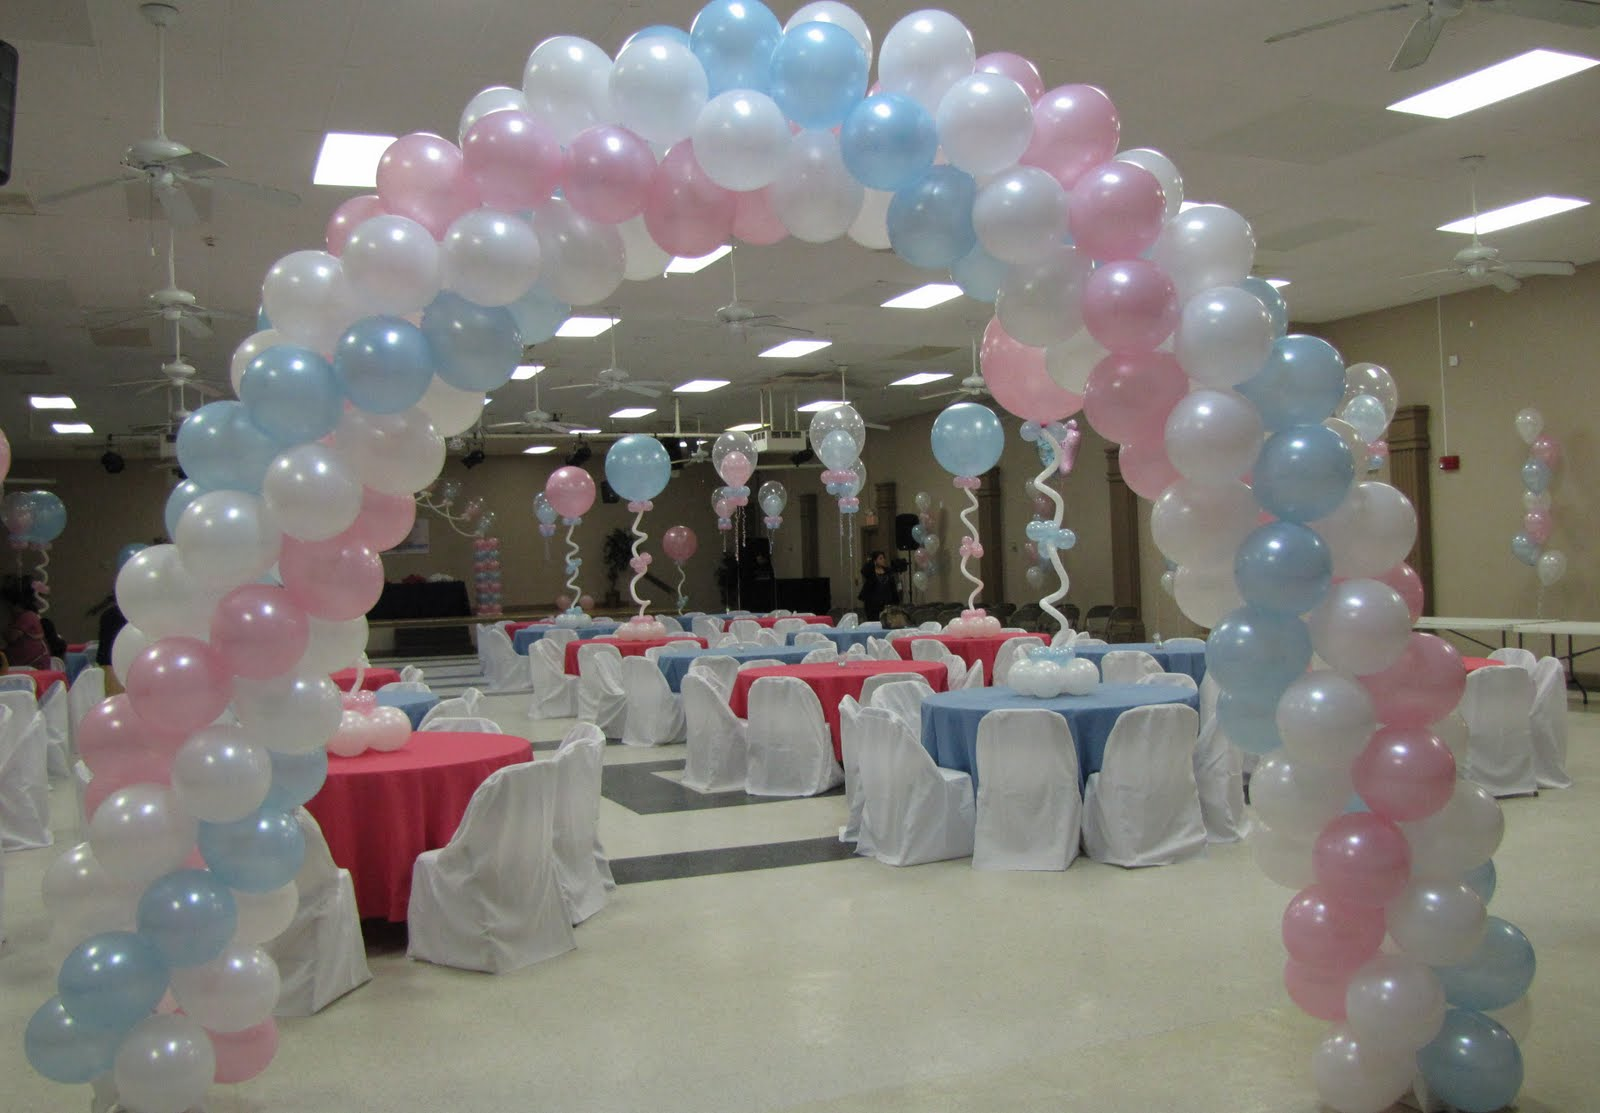 Balloons decorations for baby shower party favors ideas for Baby birthday decoration ideas